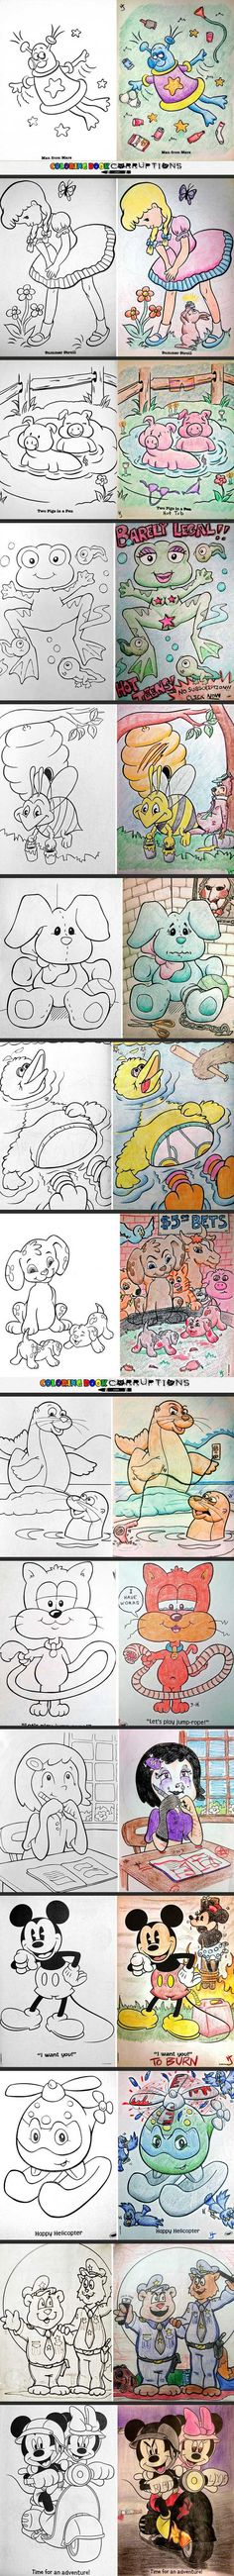 Pinterest : @MazLyons Coloring Book Corruptions, Part II